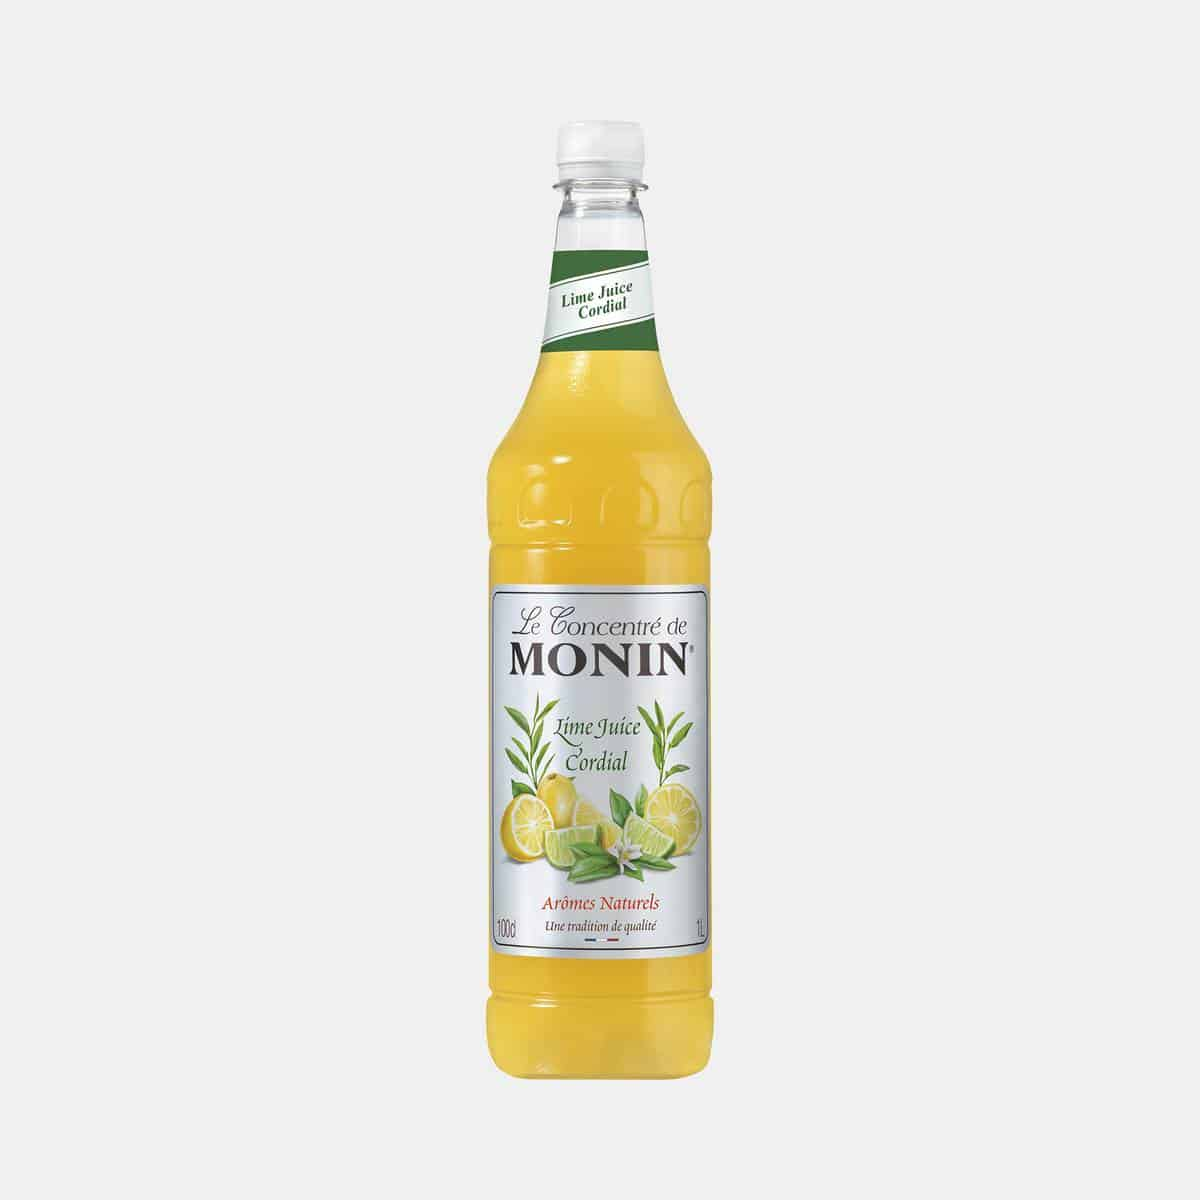 Monin Lime Juice Concentrate 1 Liter PET Bottle